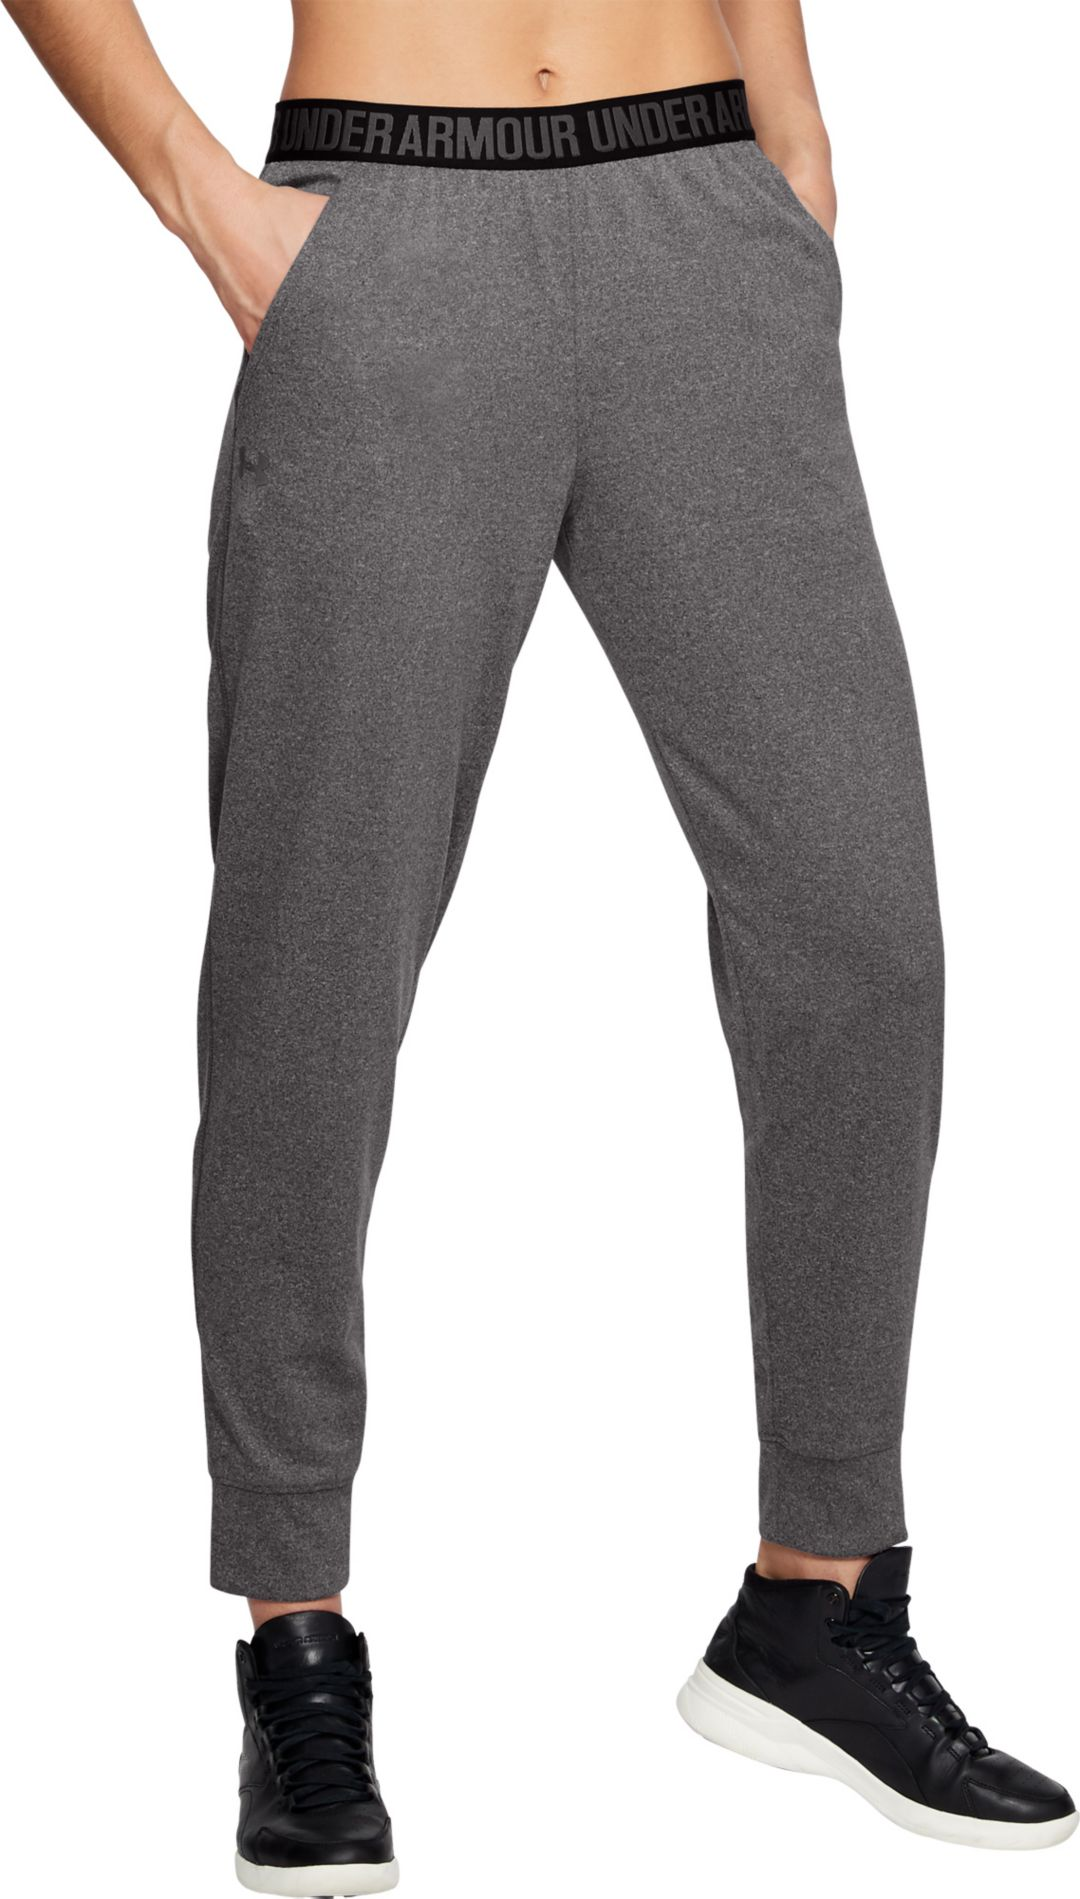 ff5b4d19 Under Armour Women's Play Up Pants | DICK'S Sporting Goods